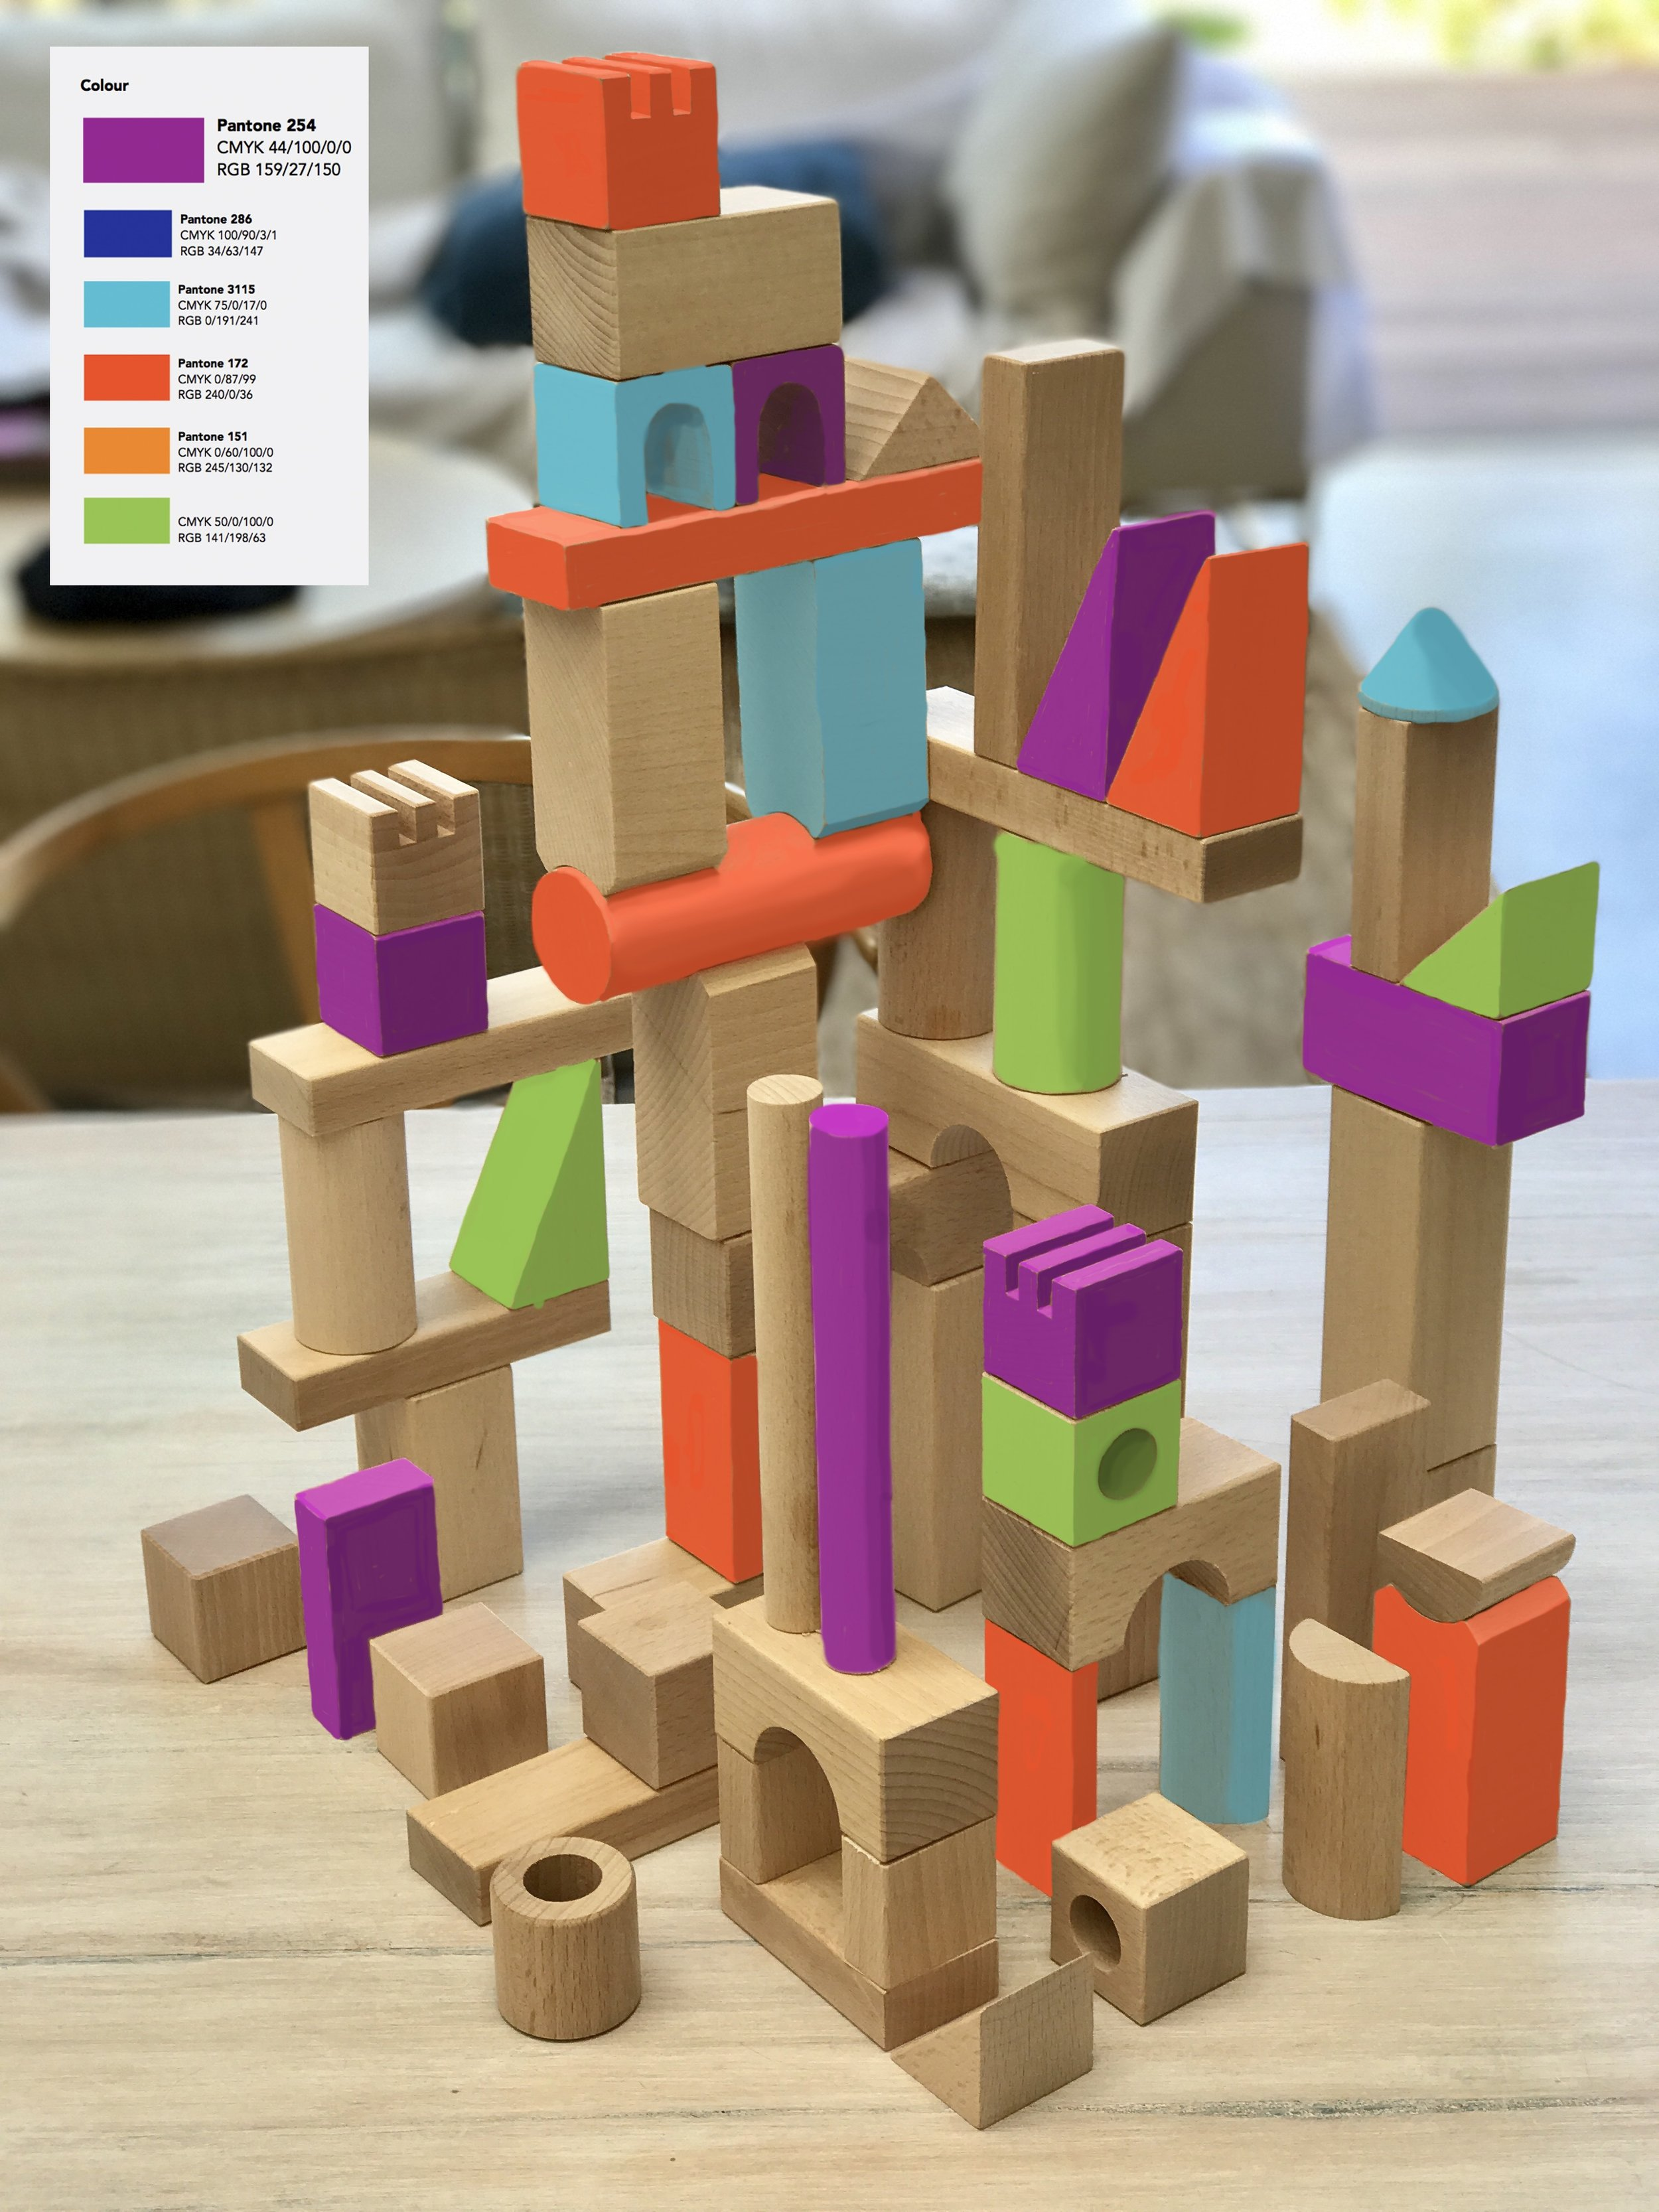 coloured blocks.jpg